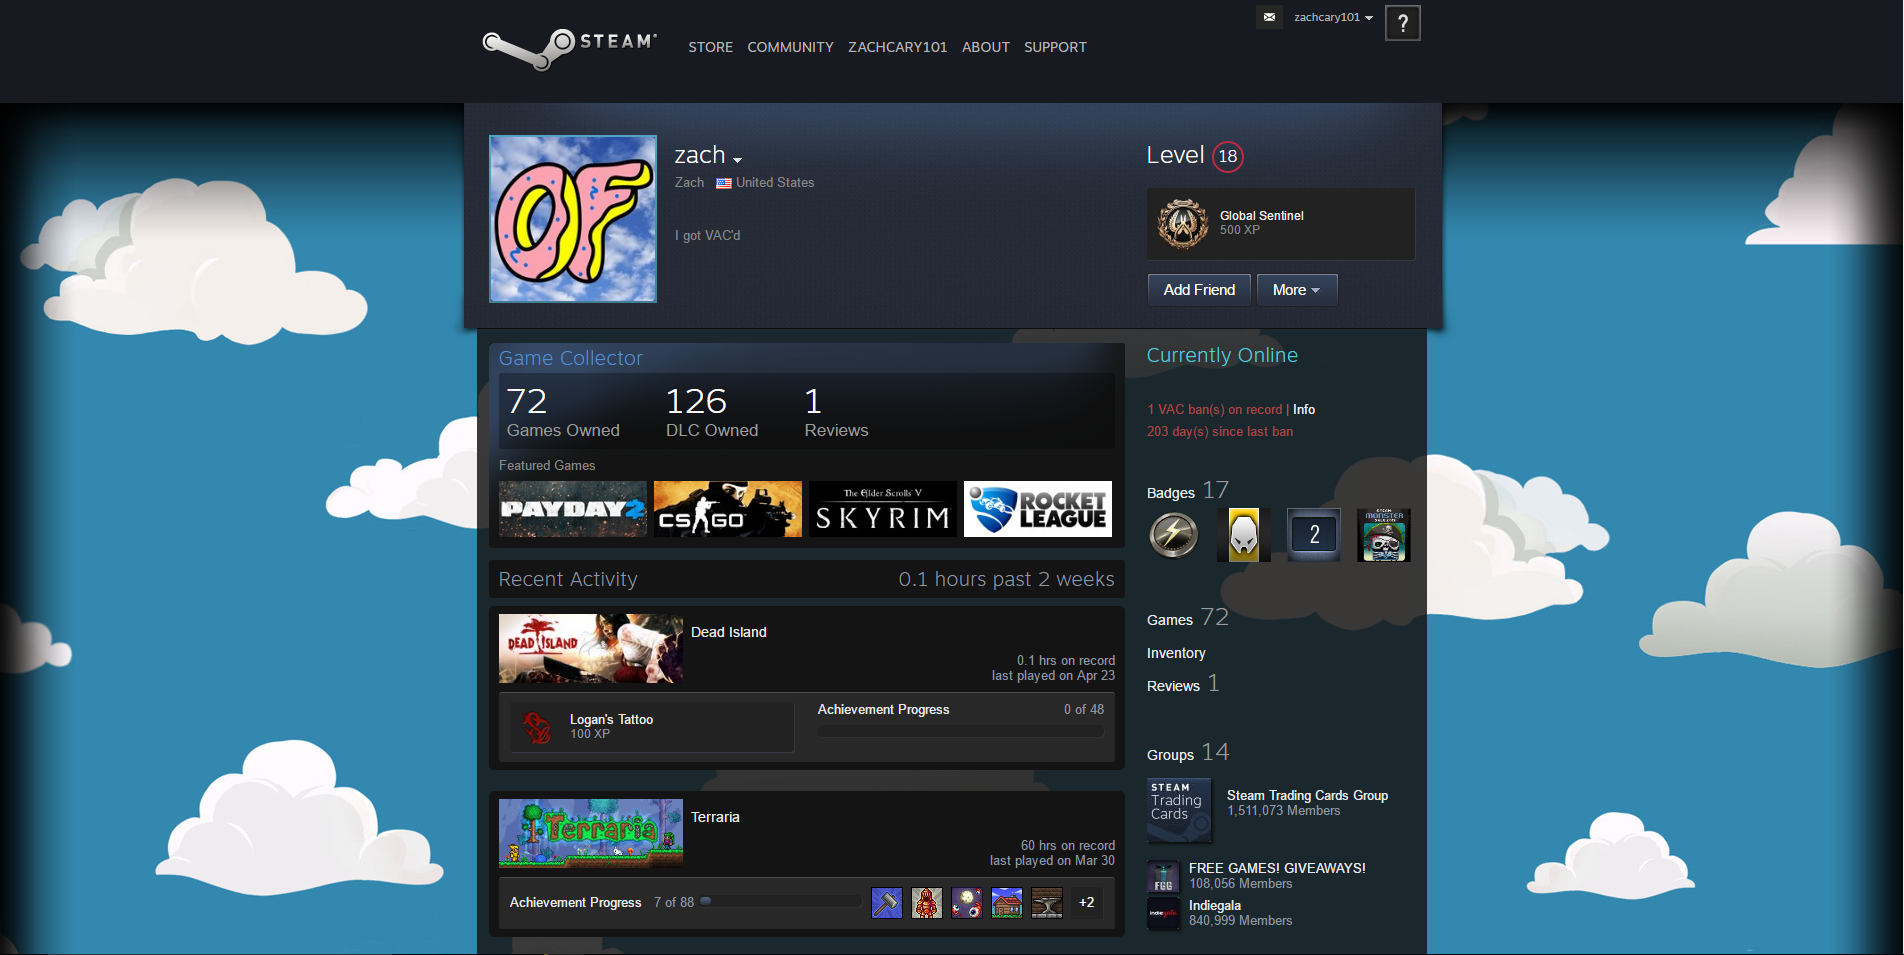 vac banned account with 72 games